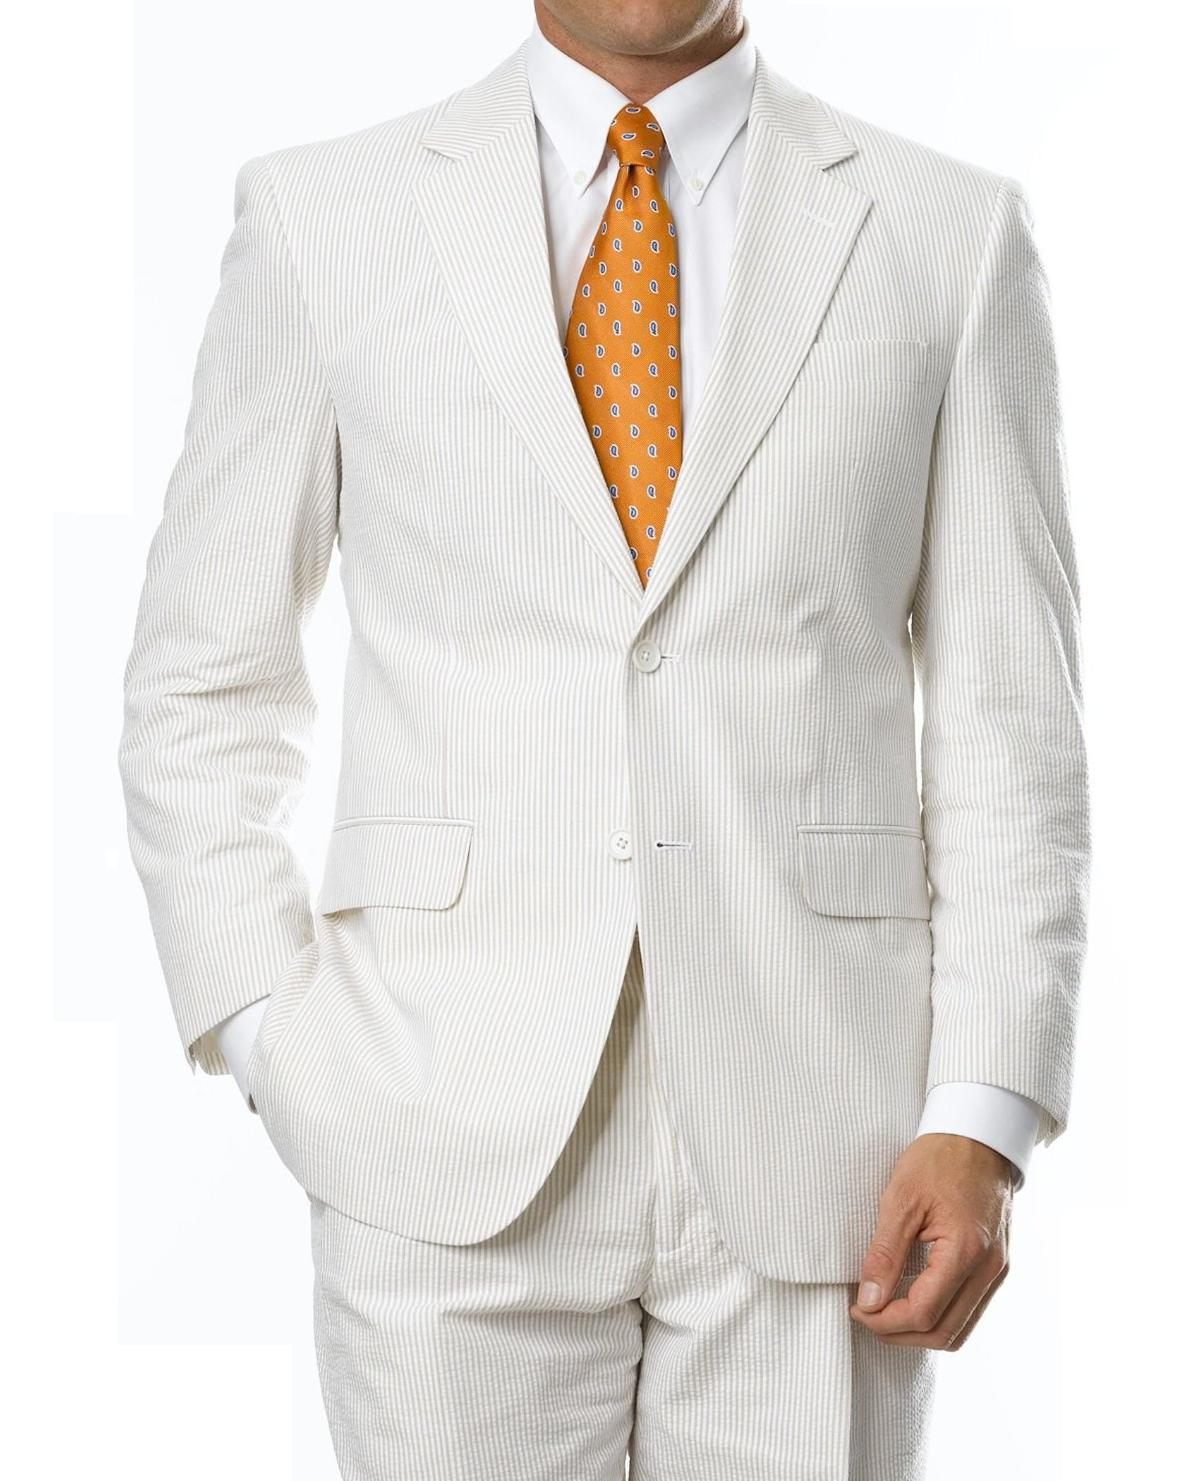 Browse our selection of cotton suits at tanahlot.tk & get the latest trends for men's custom suits online! We are a leader in creating custom clothing! Worldwide shipping available! Join us today!